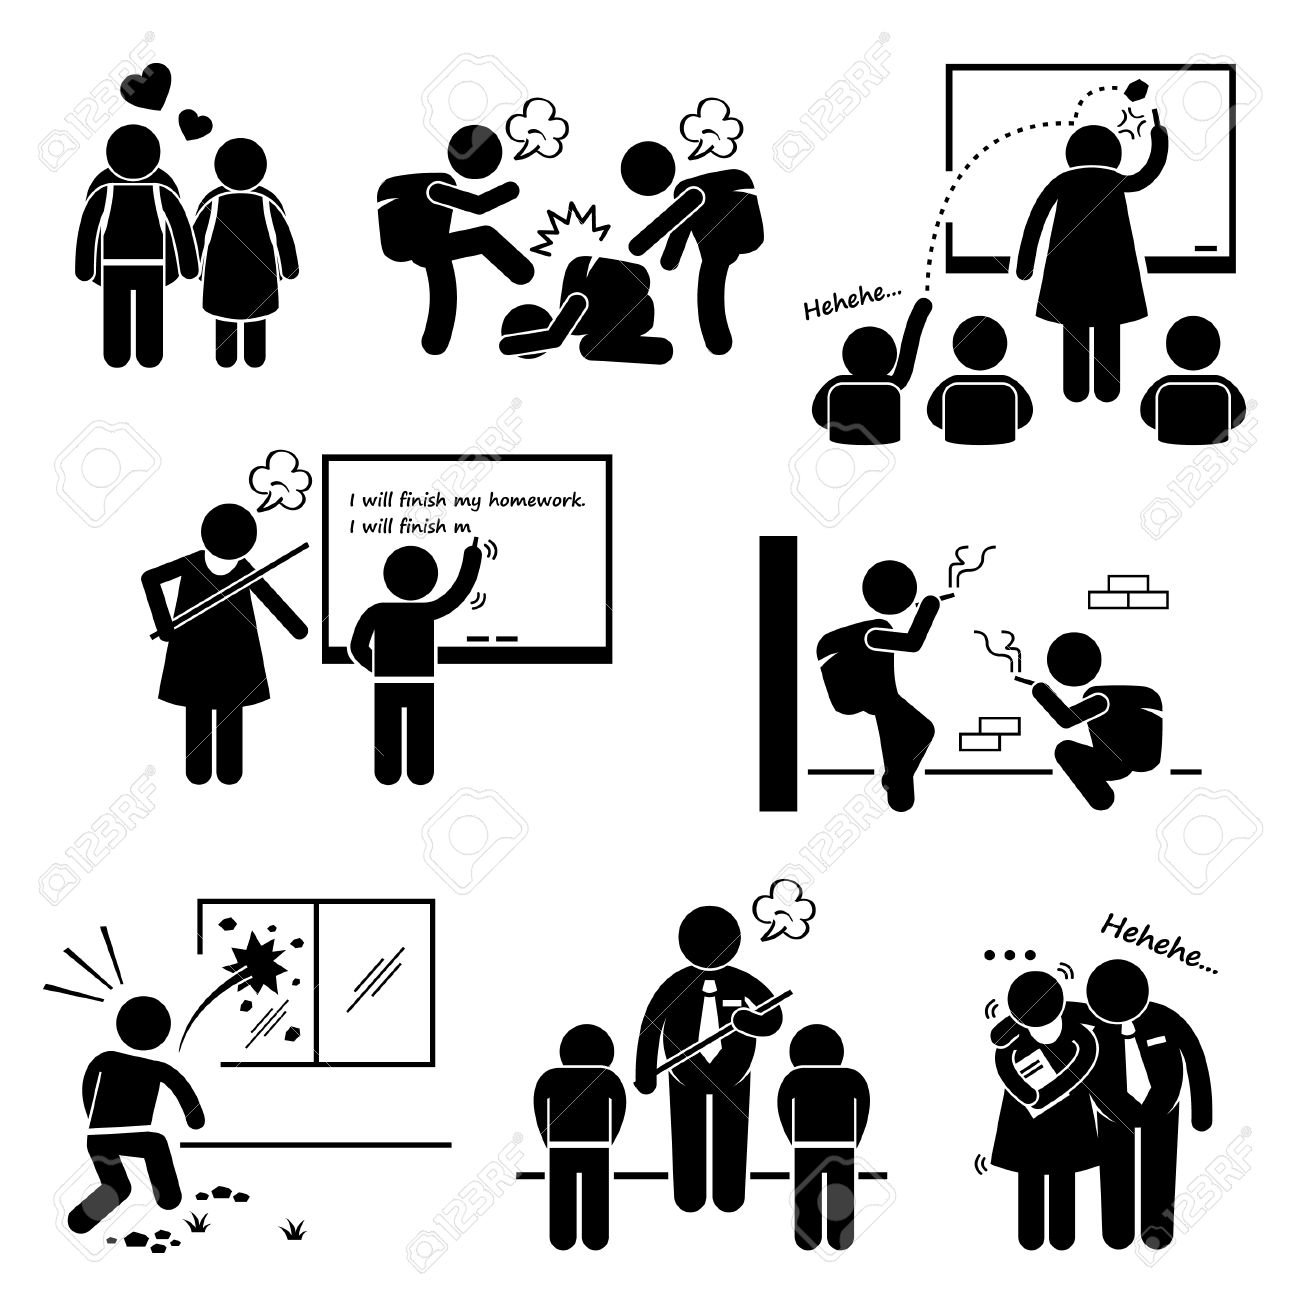 hight resolution of school education social problem student teacher stick figure pictogram icon clipart stock vector 26999415